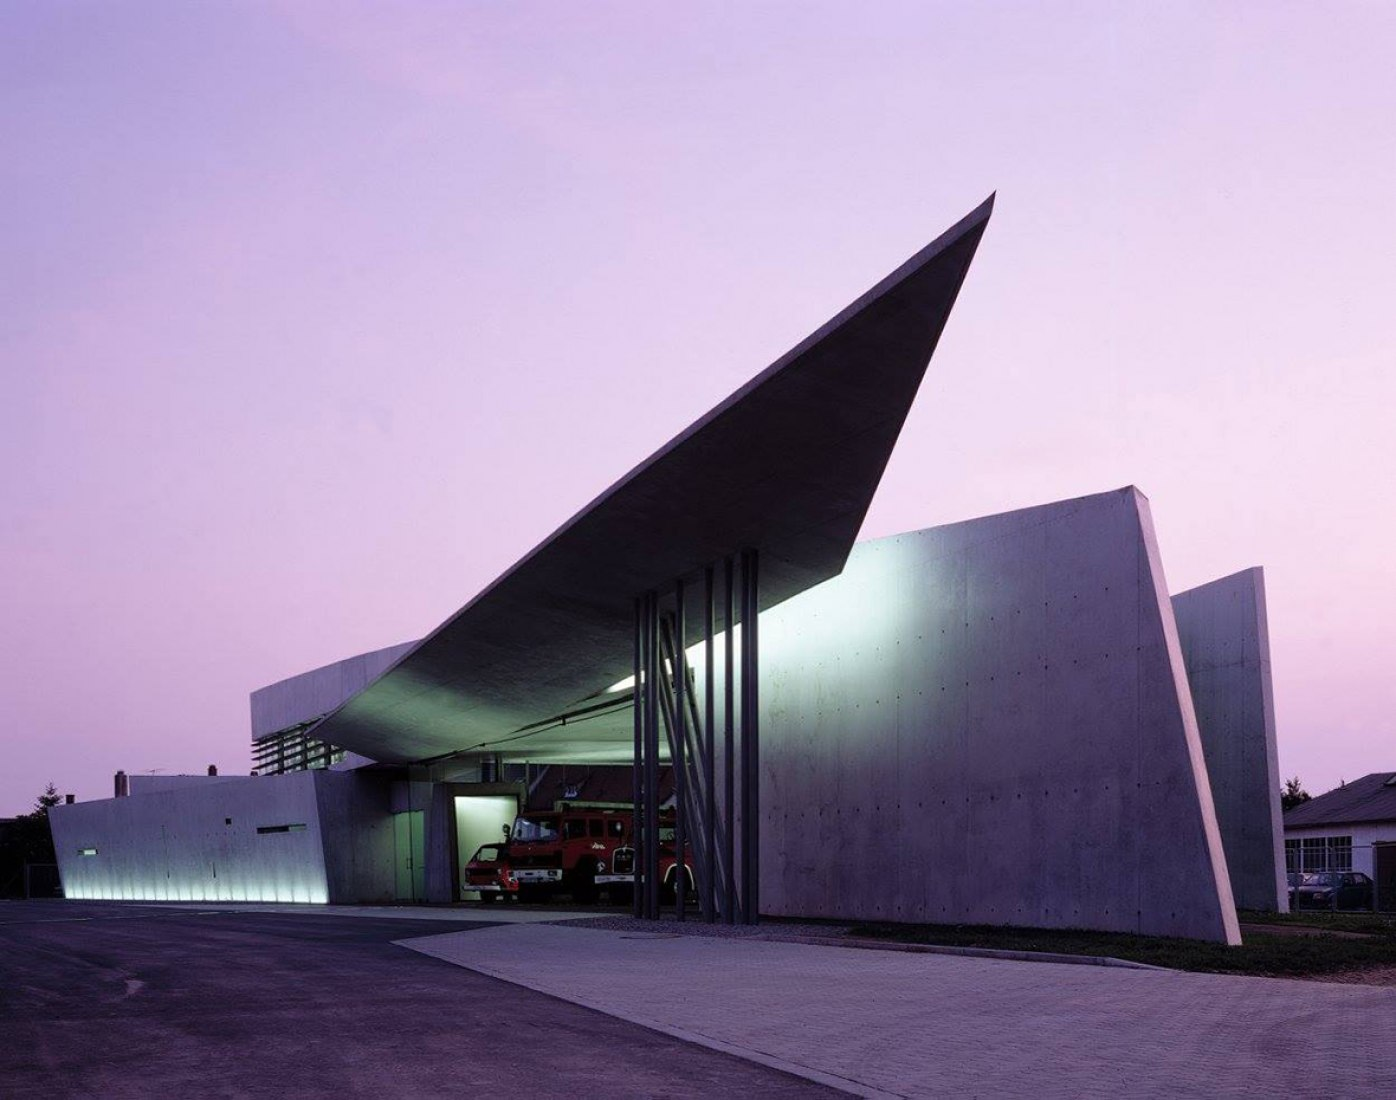 Zaha Hadid. Vitra Fire Station, Weilam Rhein, Germany. Photograph © Christian Richters. Image courtesy of RIBA. Click above to see largest image.